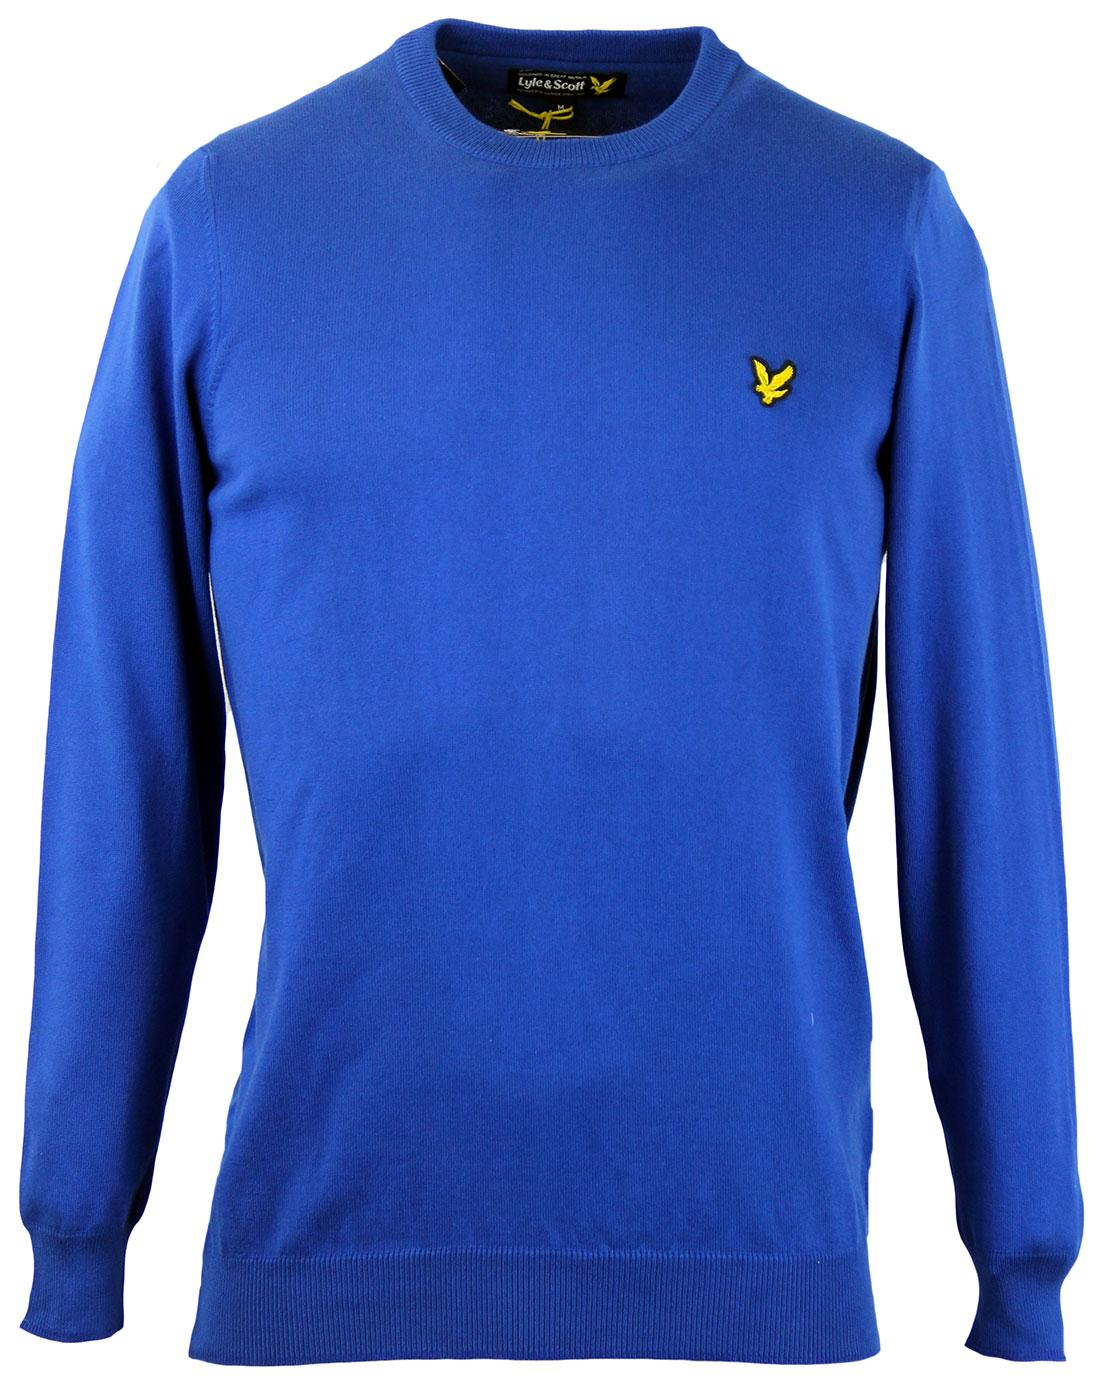 LYLE & SCOTT Retro Mod Cotton Crew Neck Jumper DB